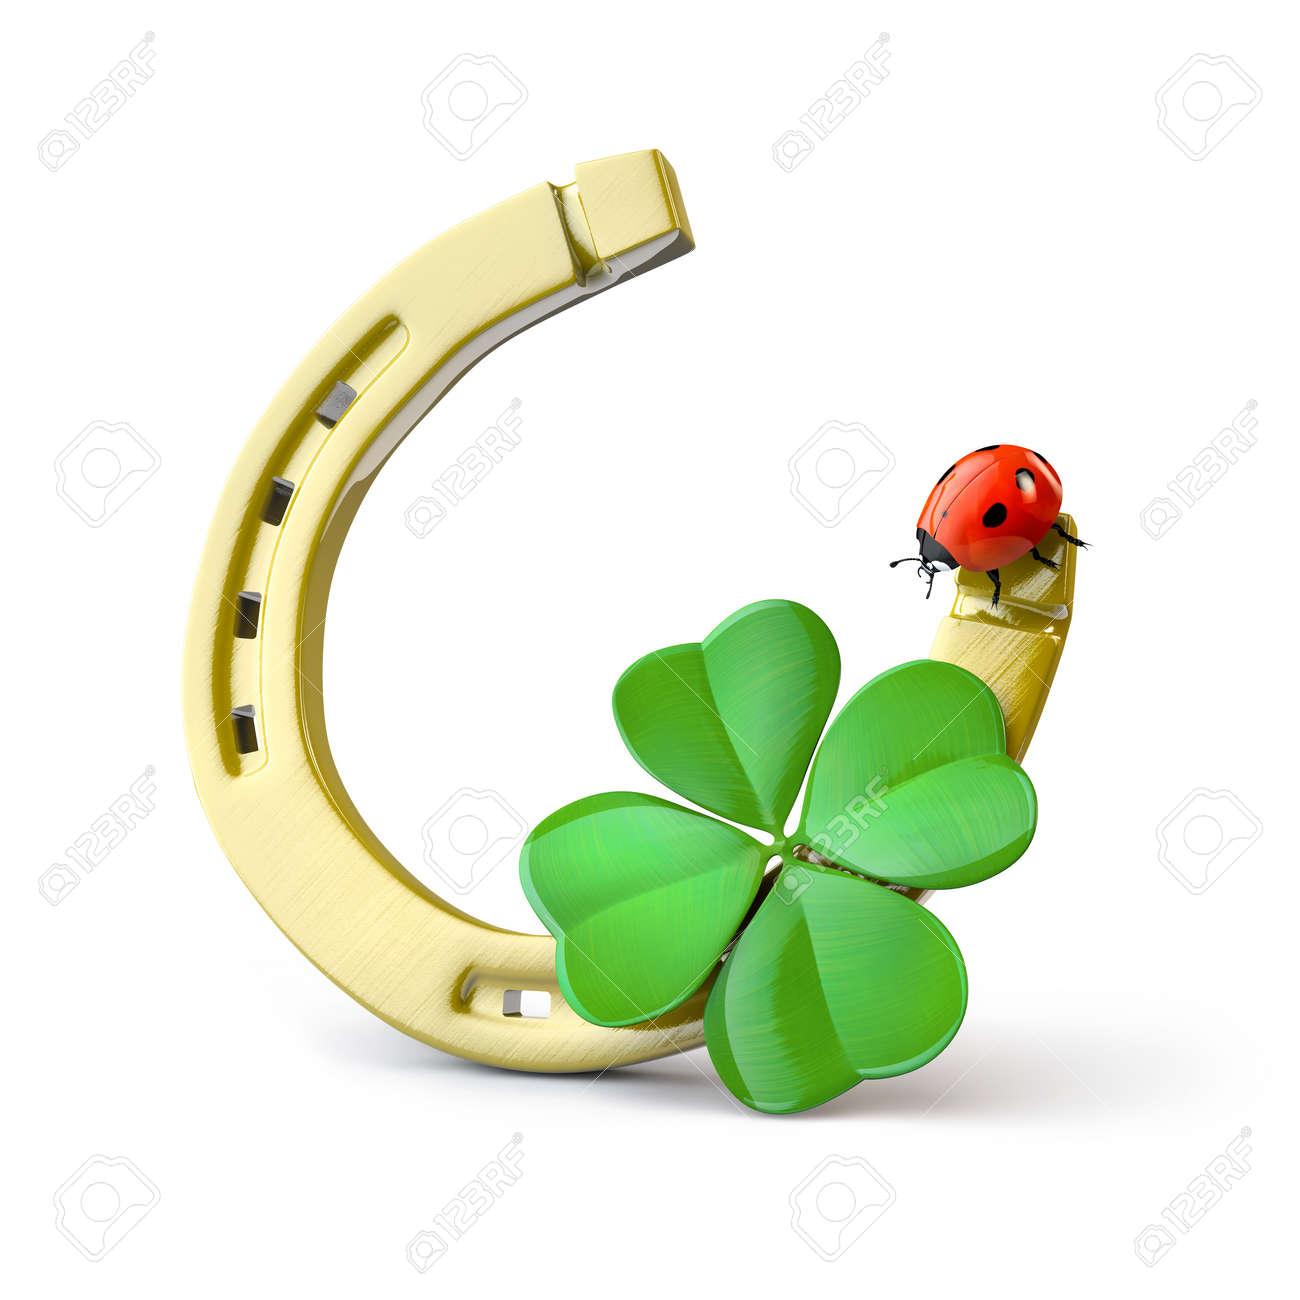 Uncategorized Lucky Symbol good luck charm images stock pictures royalty free lucky symbols horse shoe four leaf clover and ladybug photo